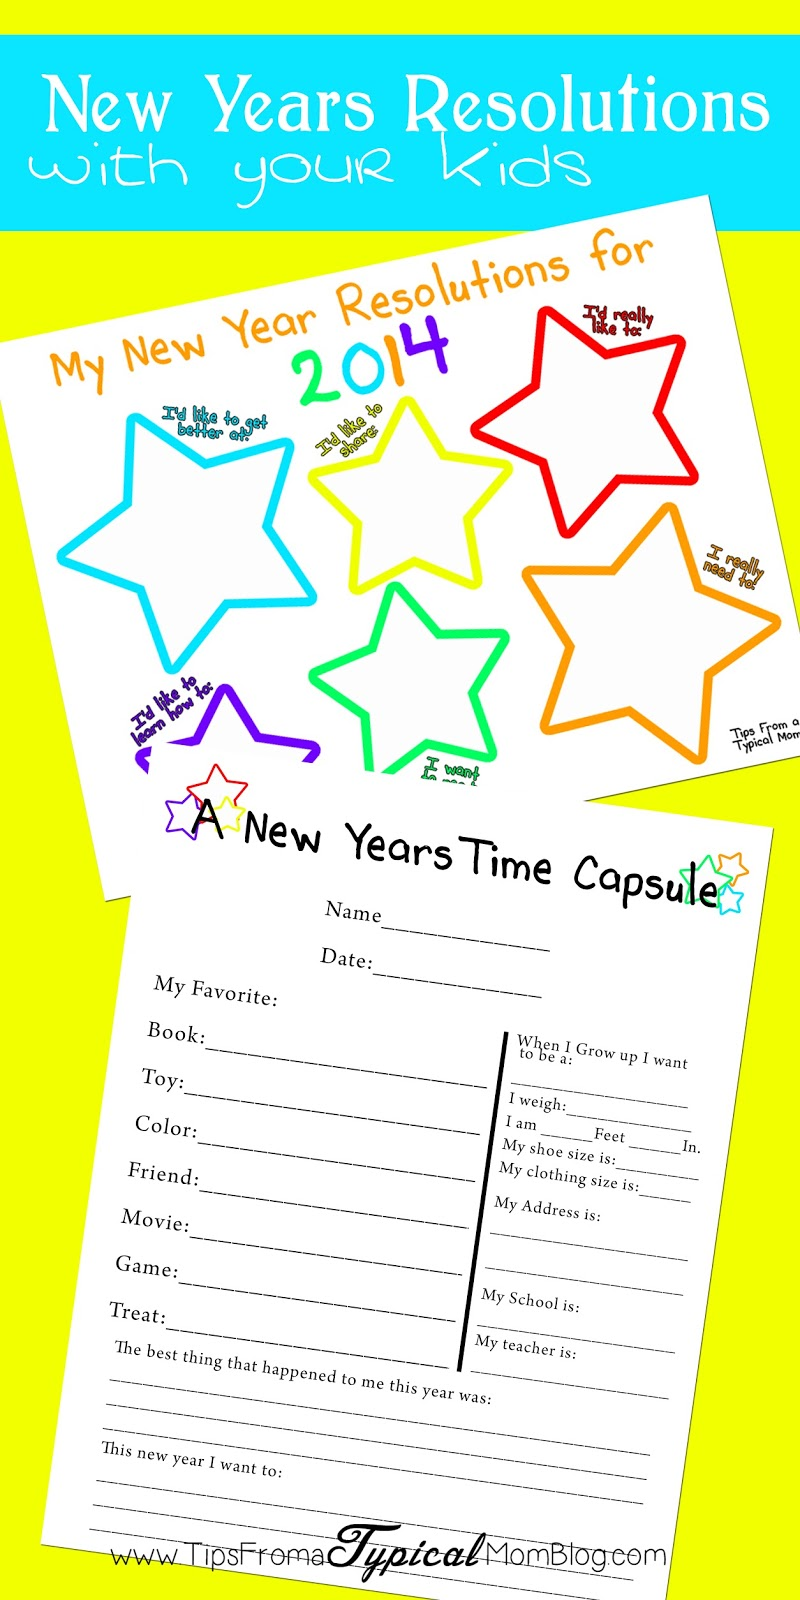 Worksheets Time Capsule Worksheet making new years resolutions with your kids free printable update download the 2018 worksheets here